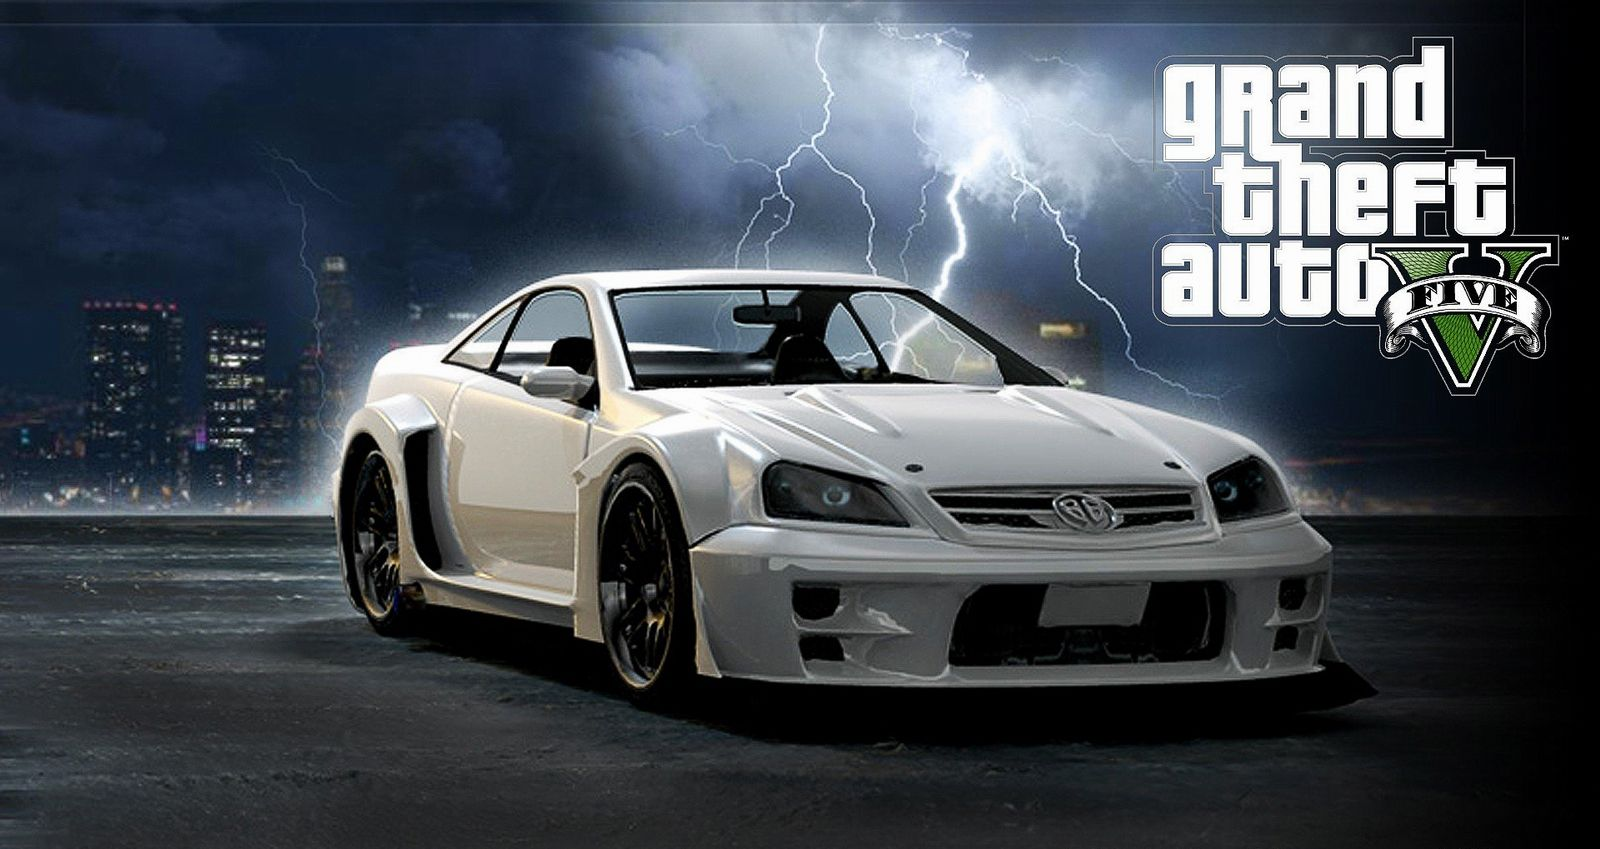 GTA 5 car wallpaper high resolution Is Cool Wallpapers